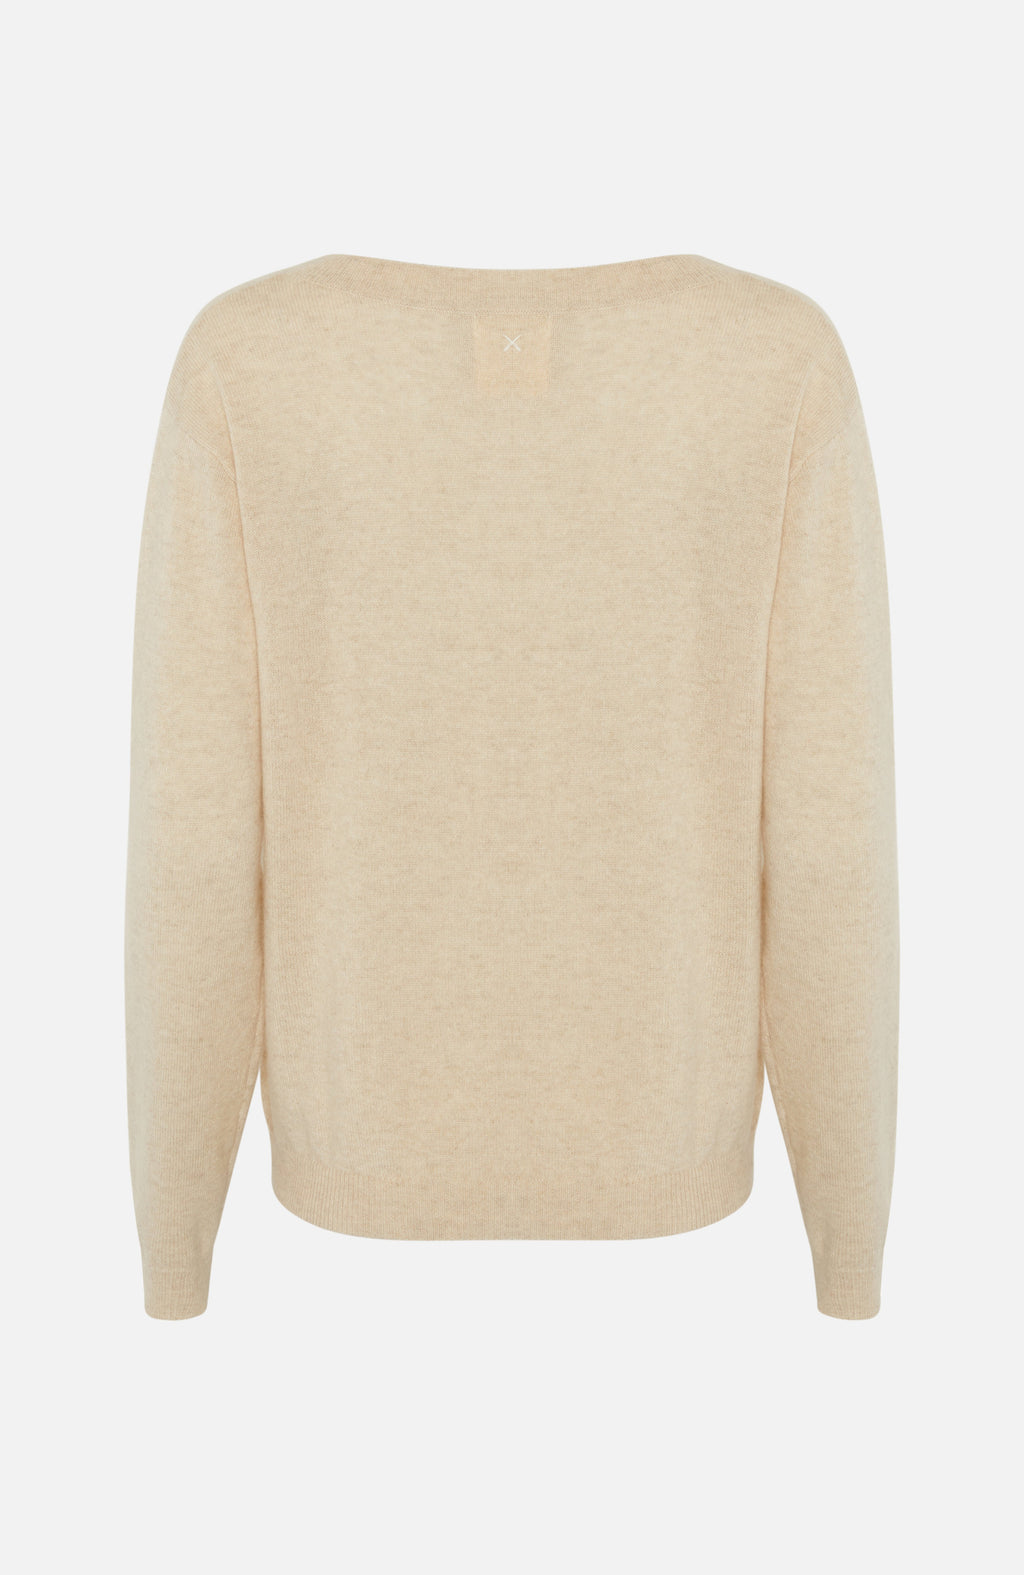 Republic Of Cashmere Boxy V Neck Oatmilk Sweater